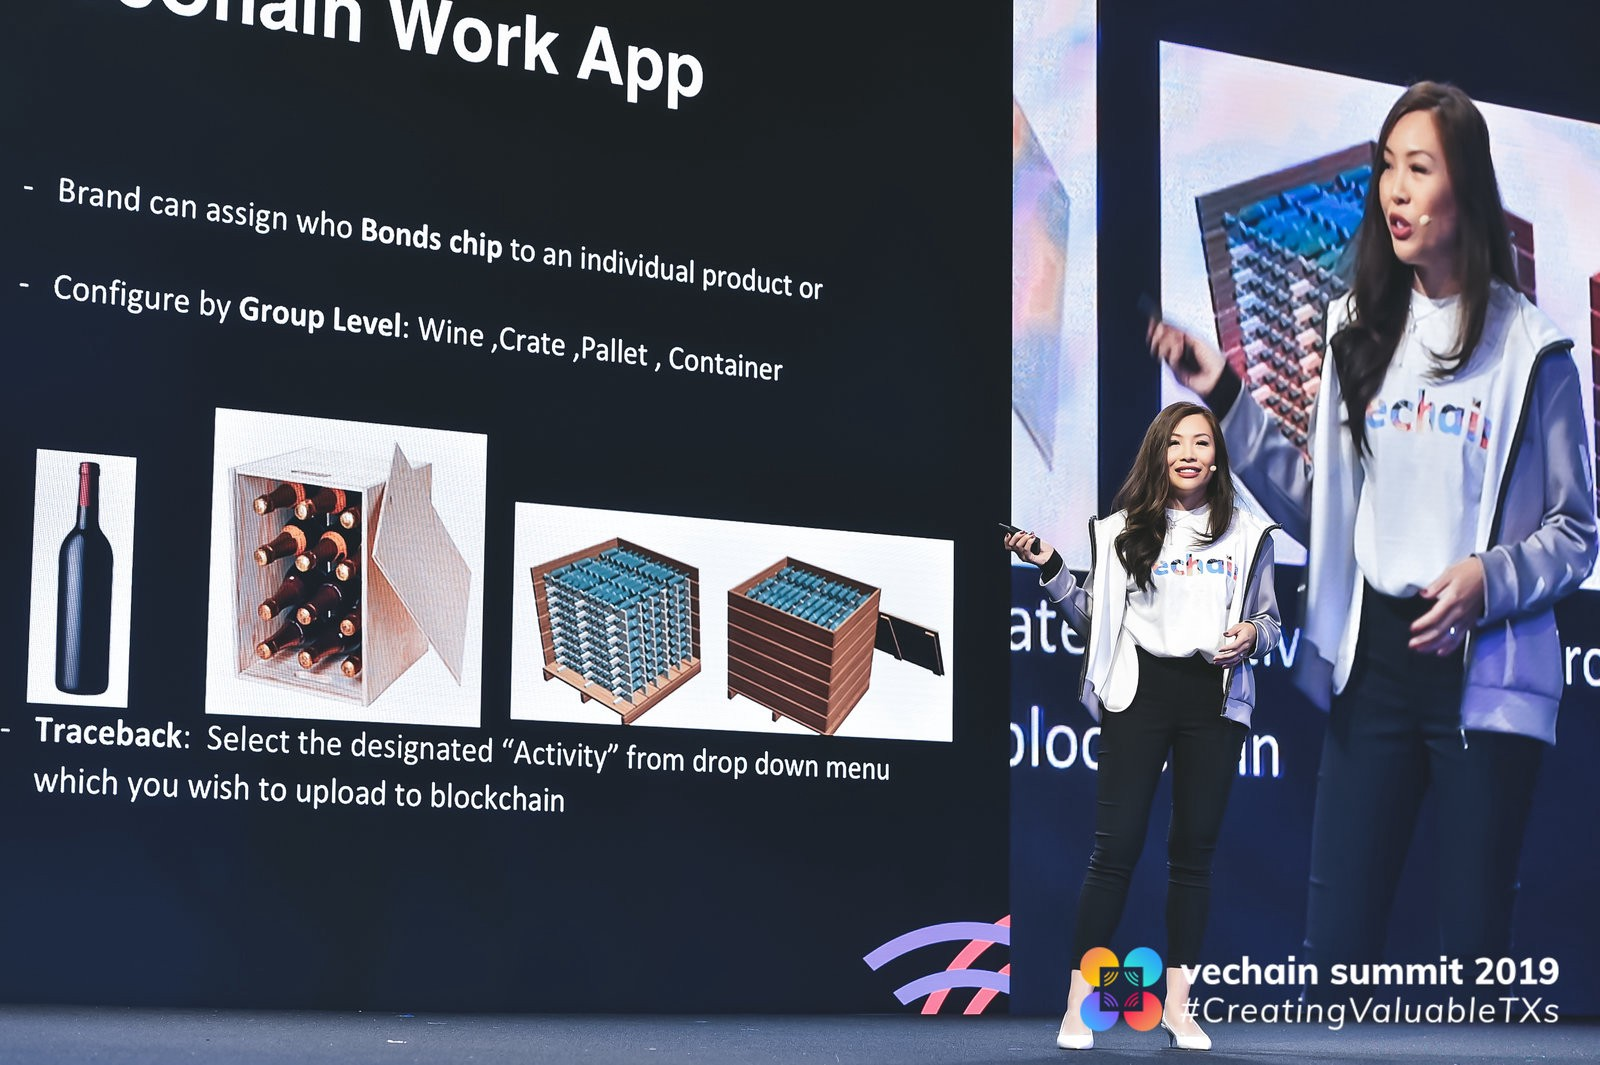 Demonstrating how the VeChain Work App is used to bind physical products to NFC/RFID chips